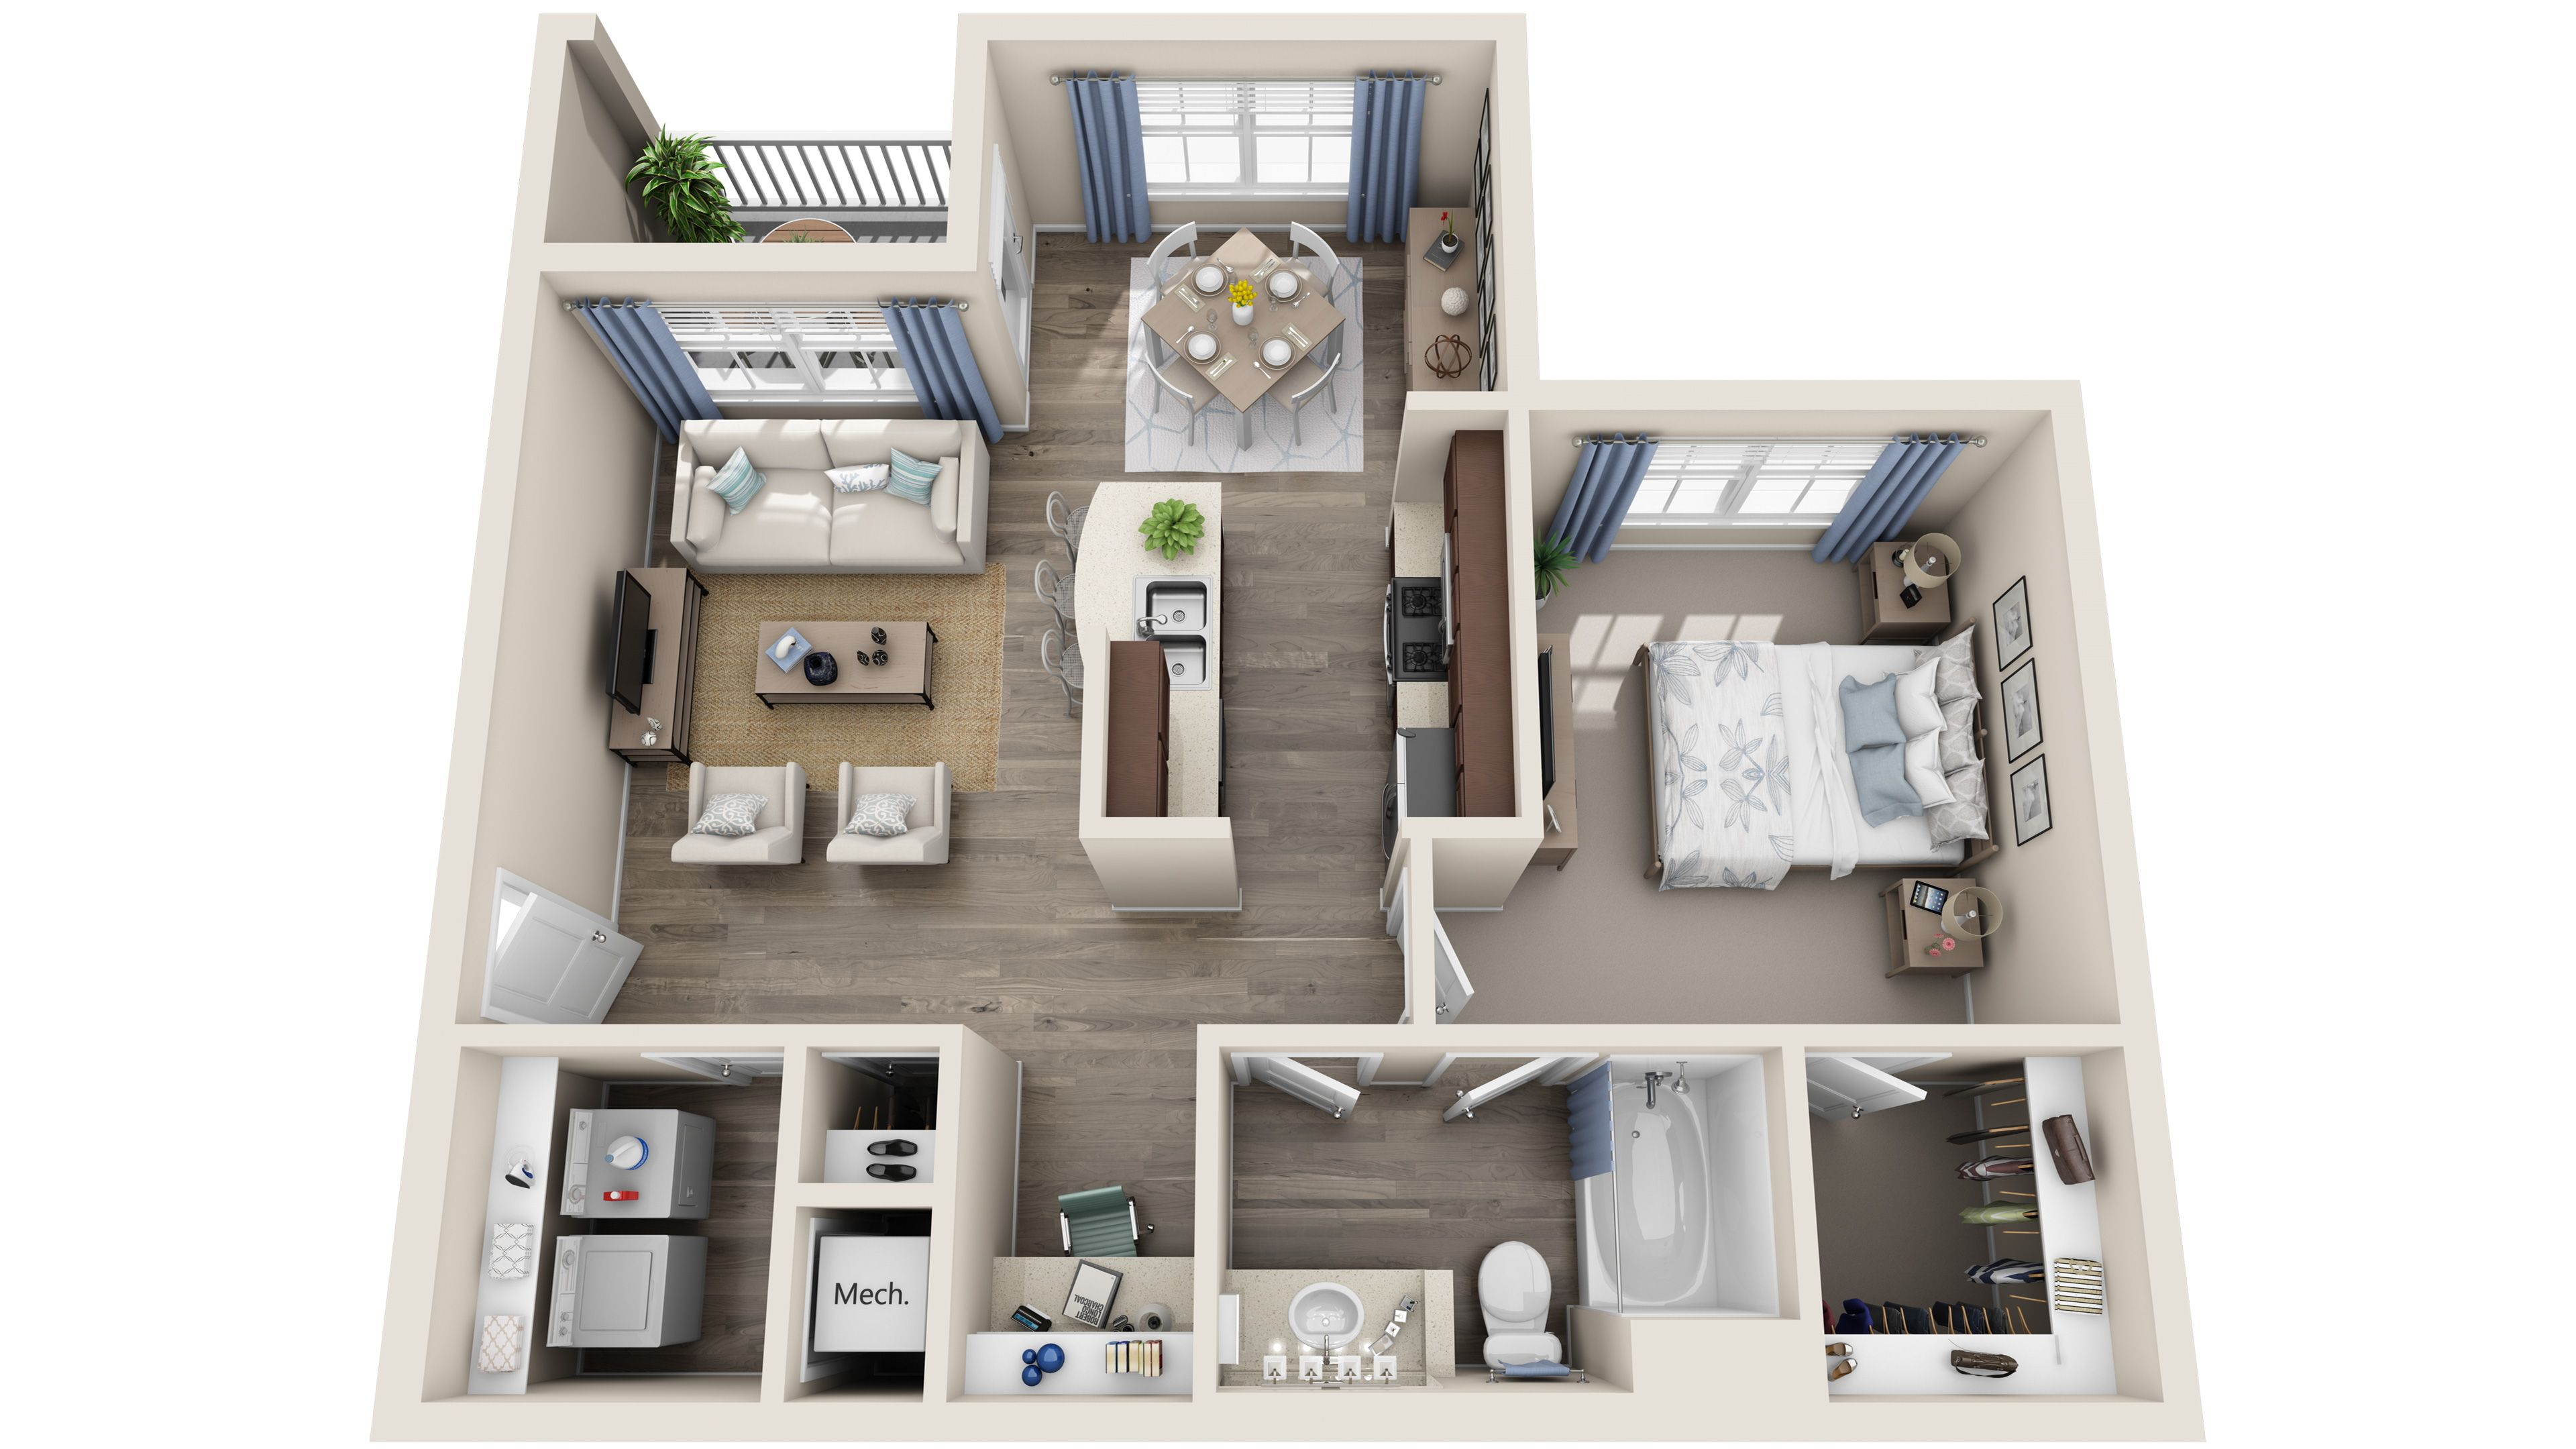 Standard 3d Floor Plans Guest House Plans House Layout Plans Small House Design Plans